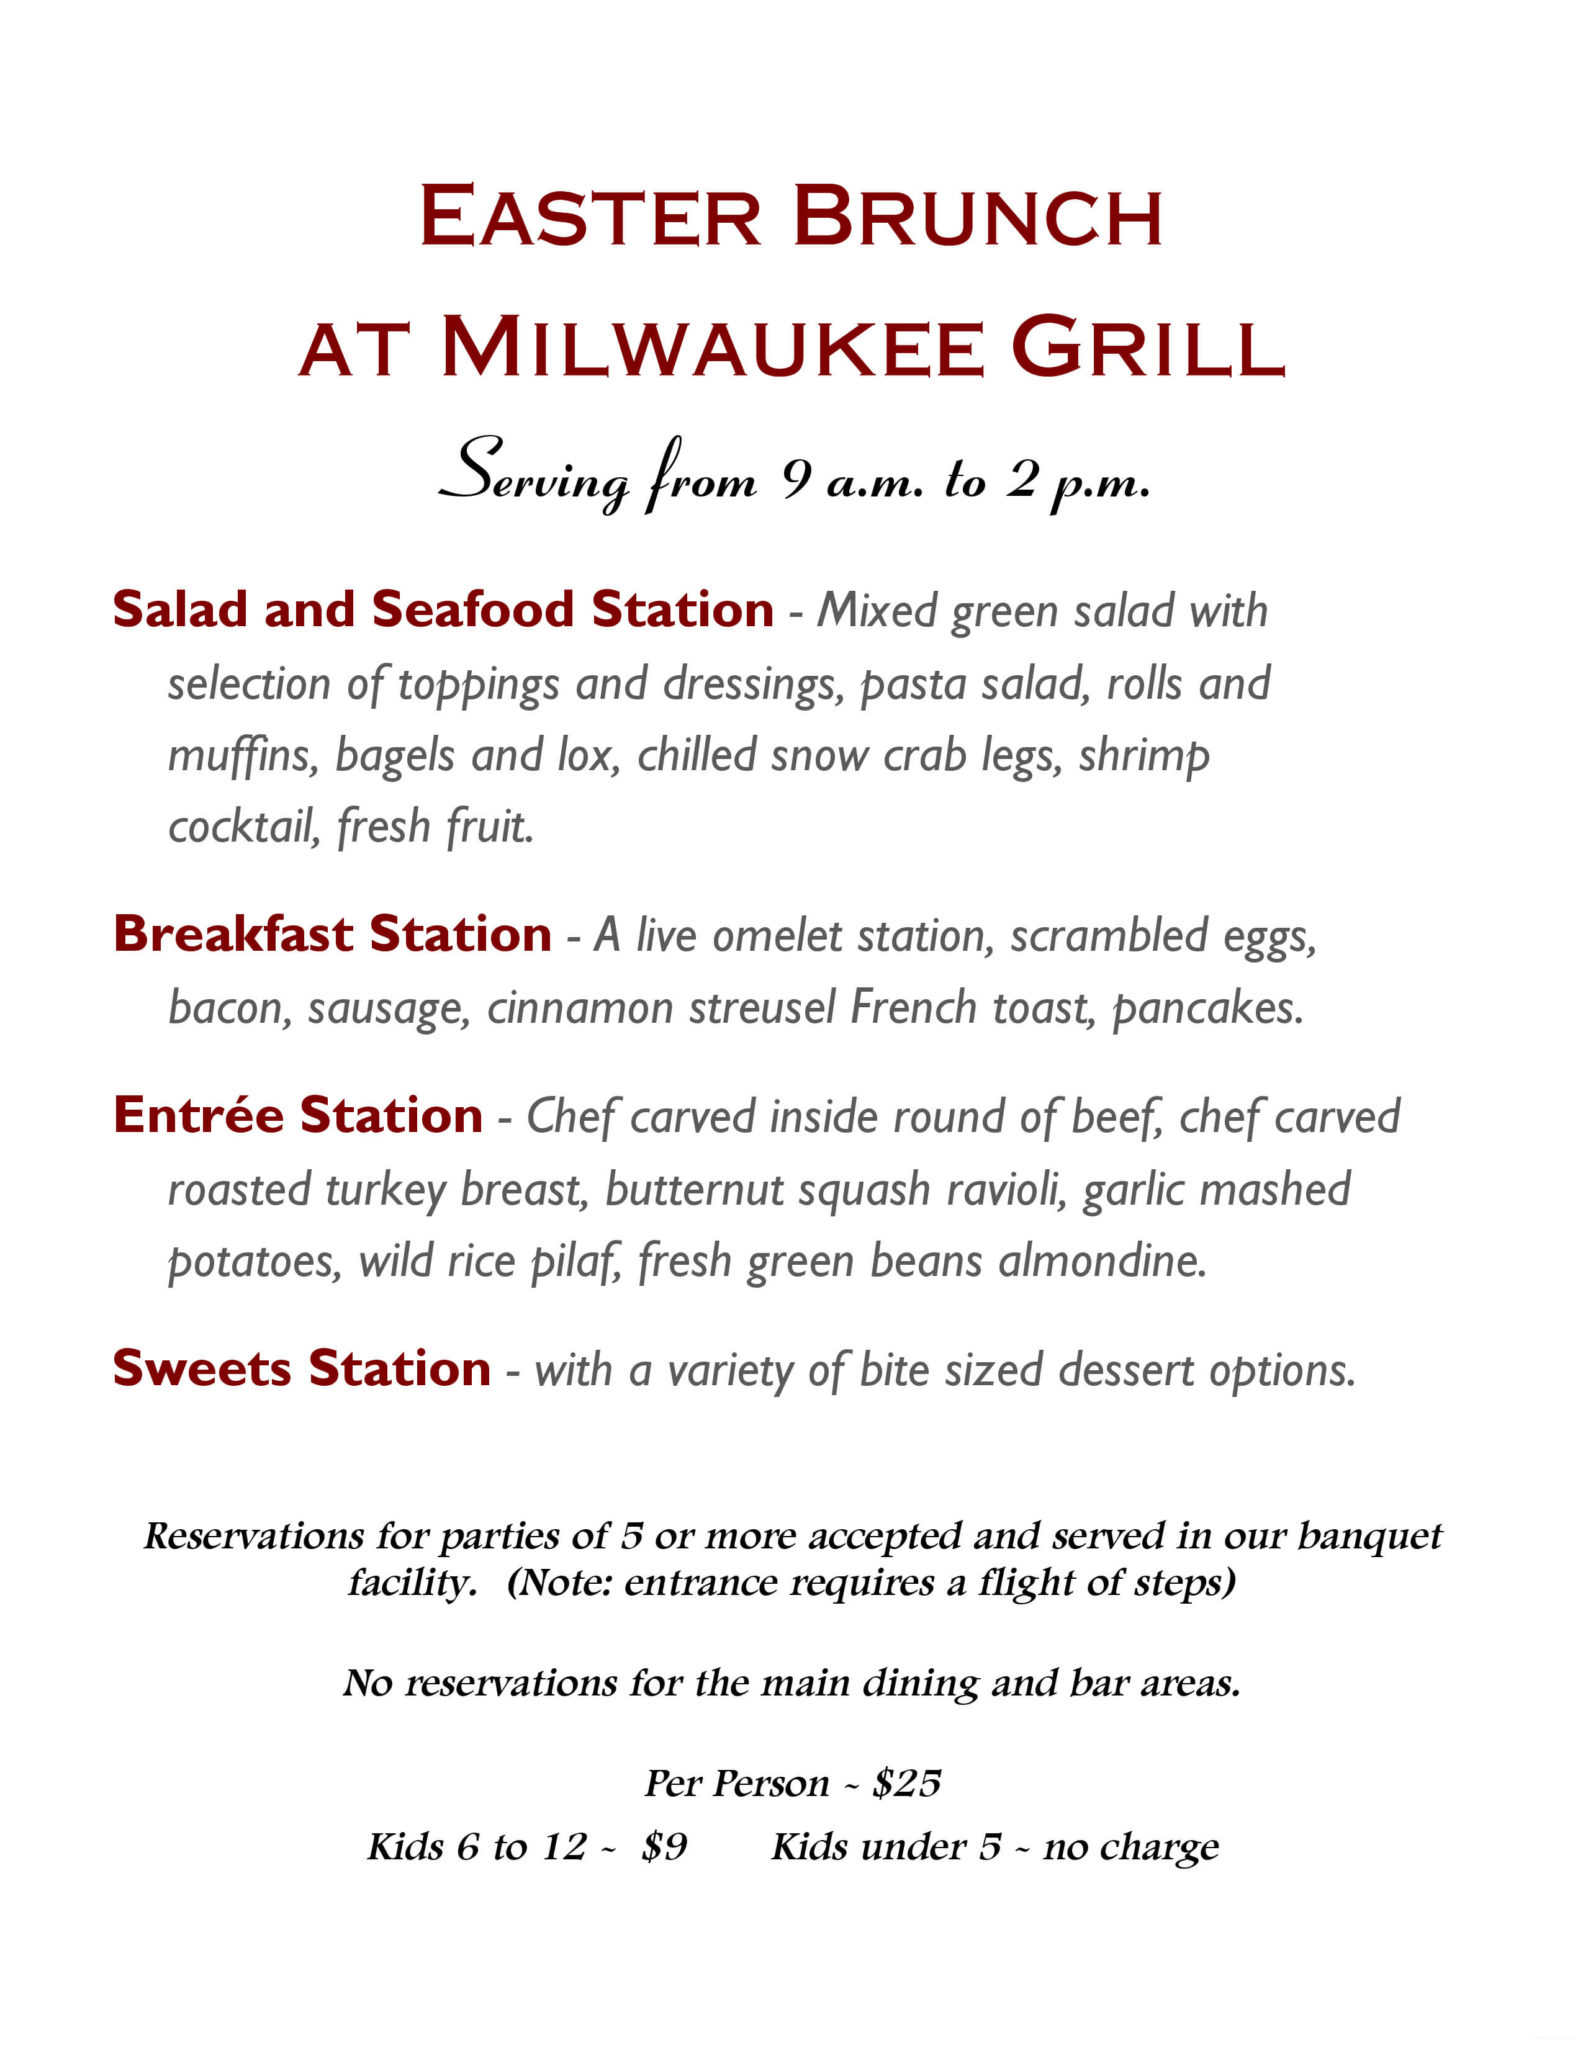 join us for easter brunch 2016 on march 27 milwaukee grill rh milwaukeegrill com easter buffet menus broward county easter buffet menus broward county